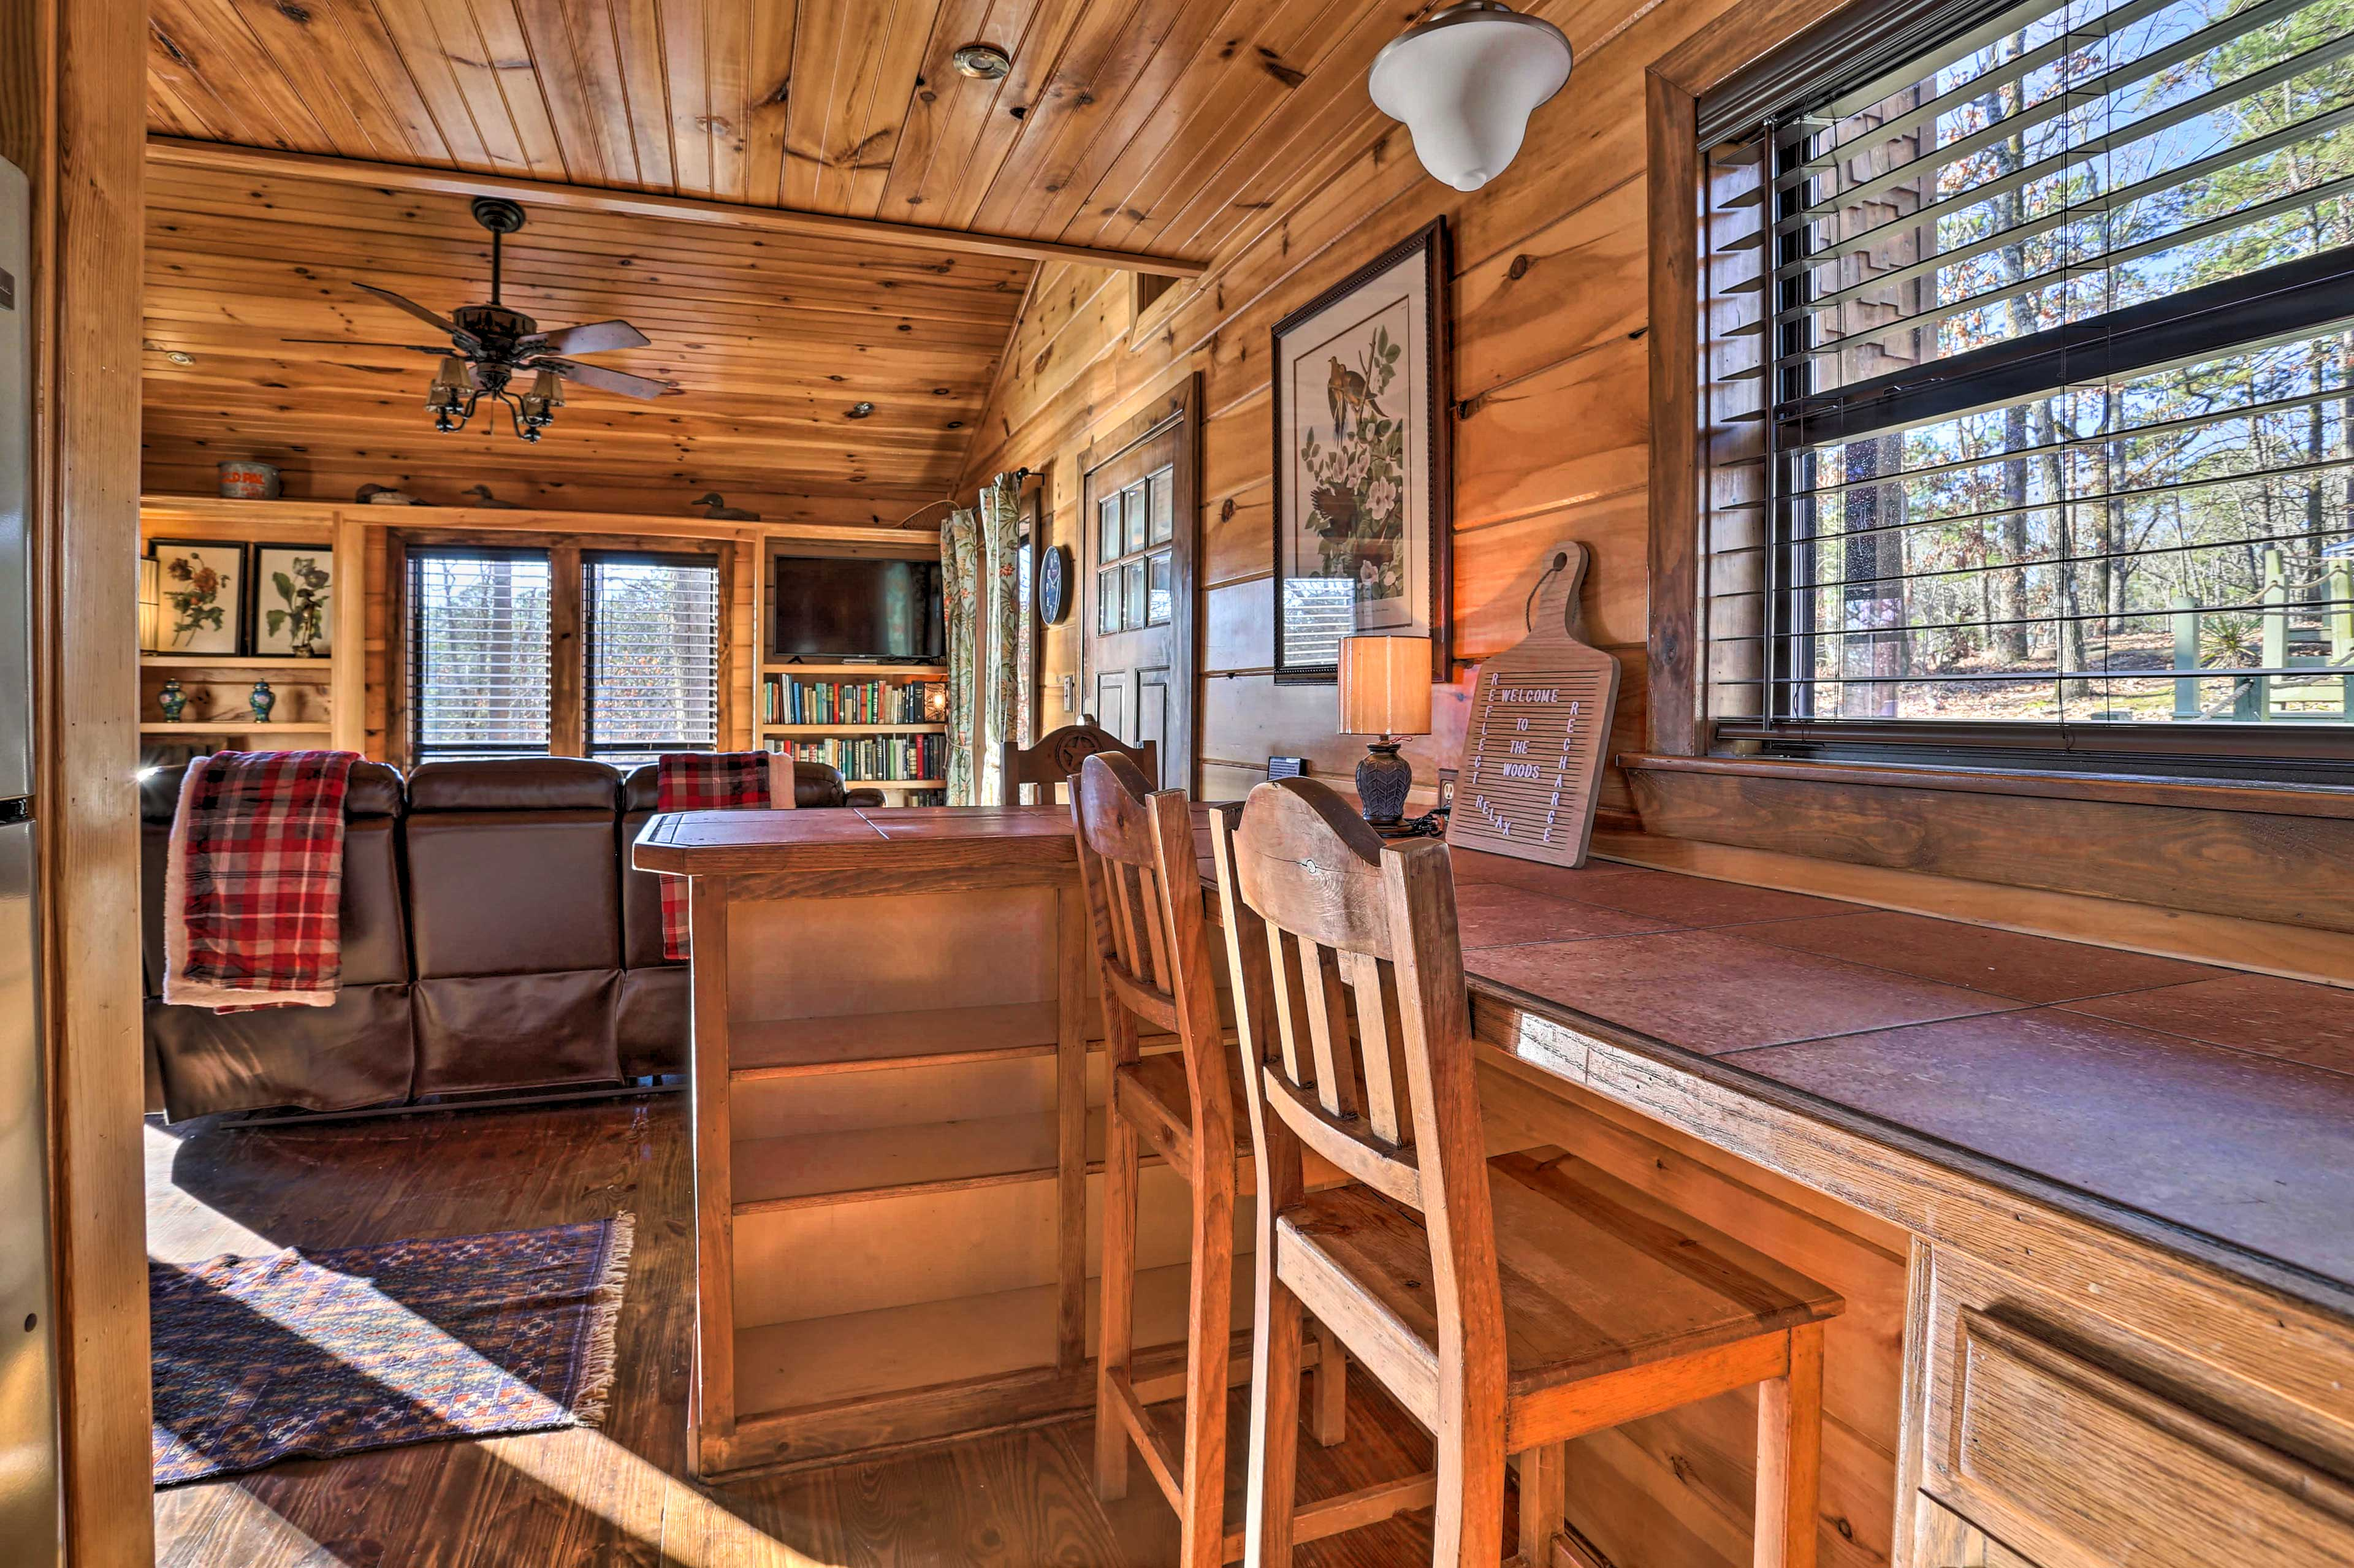 This 2-bed, 1.5-bath vacation rental offers space for 4!